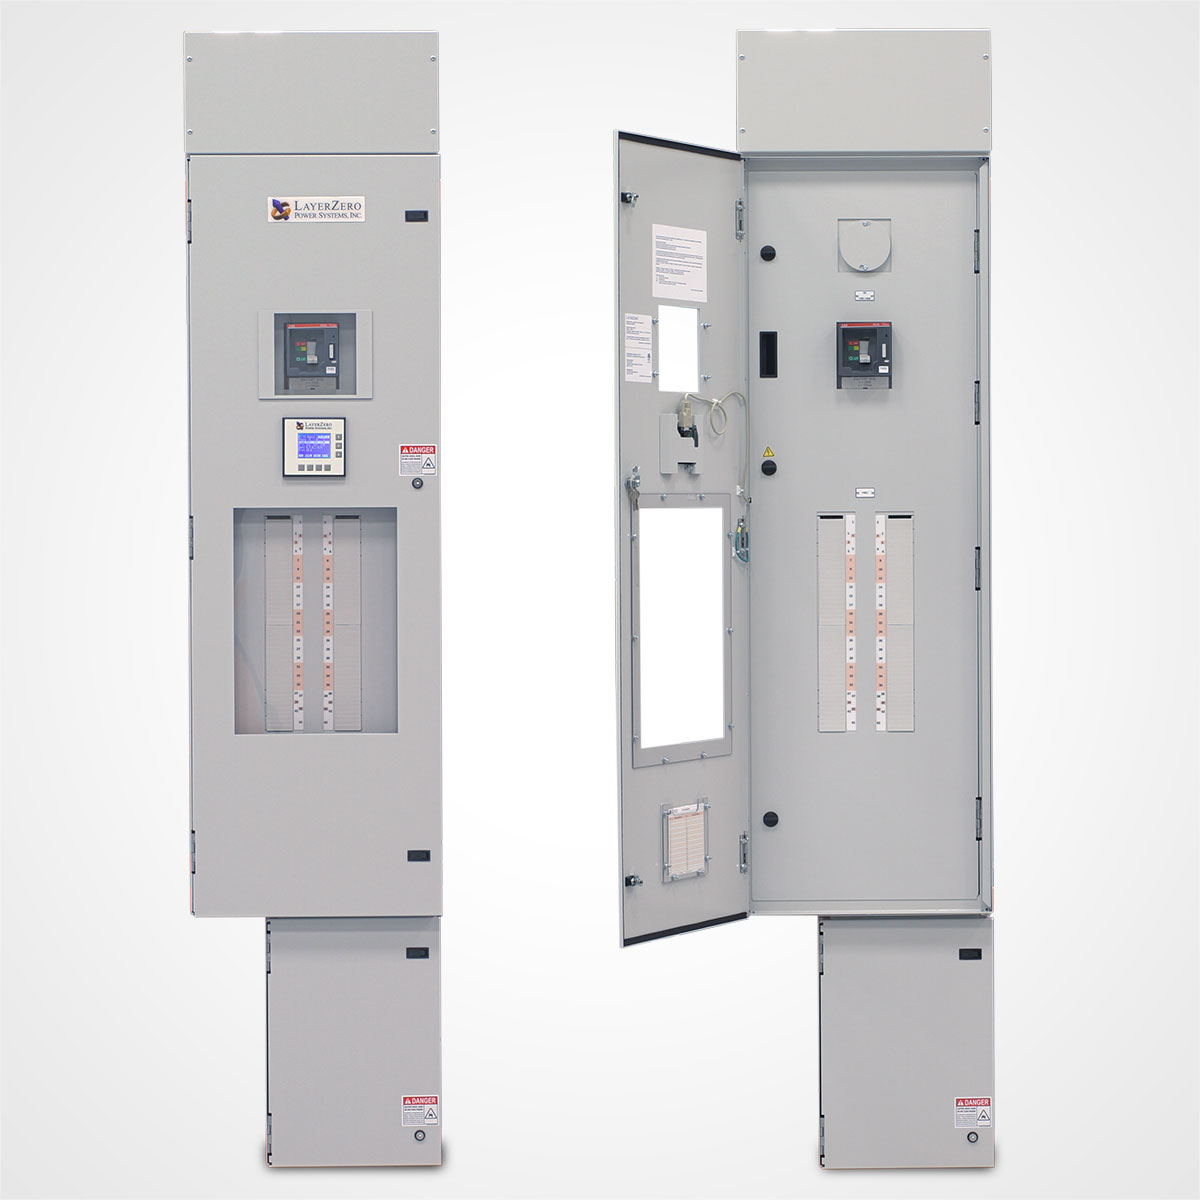 The LayerZero Series 70: ePanel-1 Wall-Mounted Power Panel.